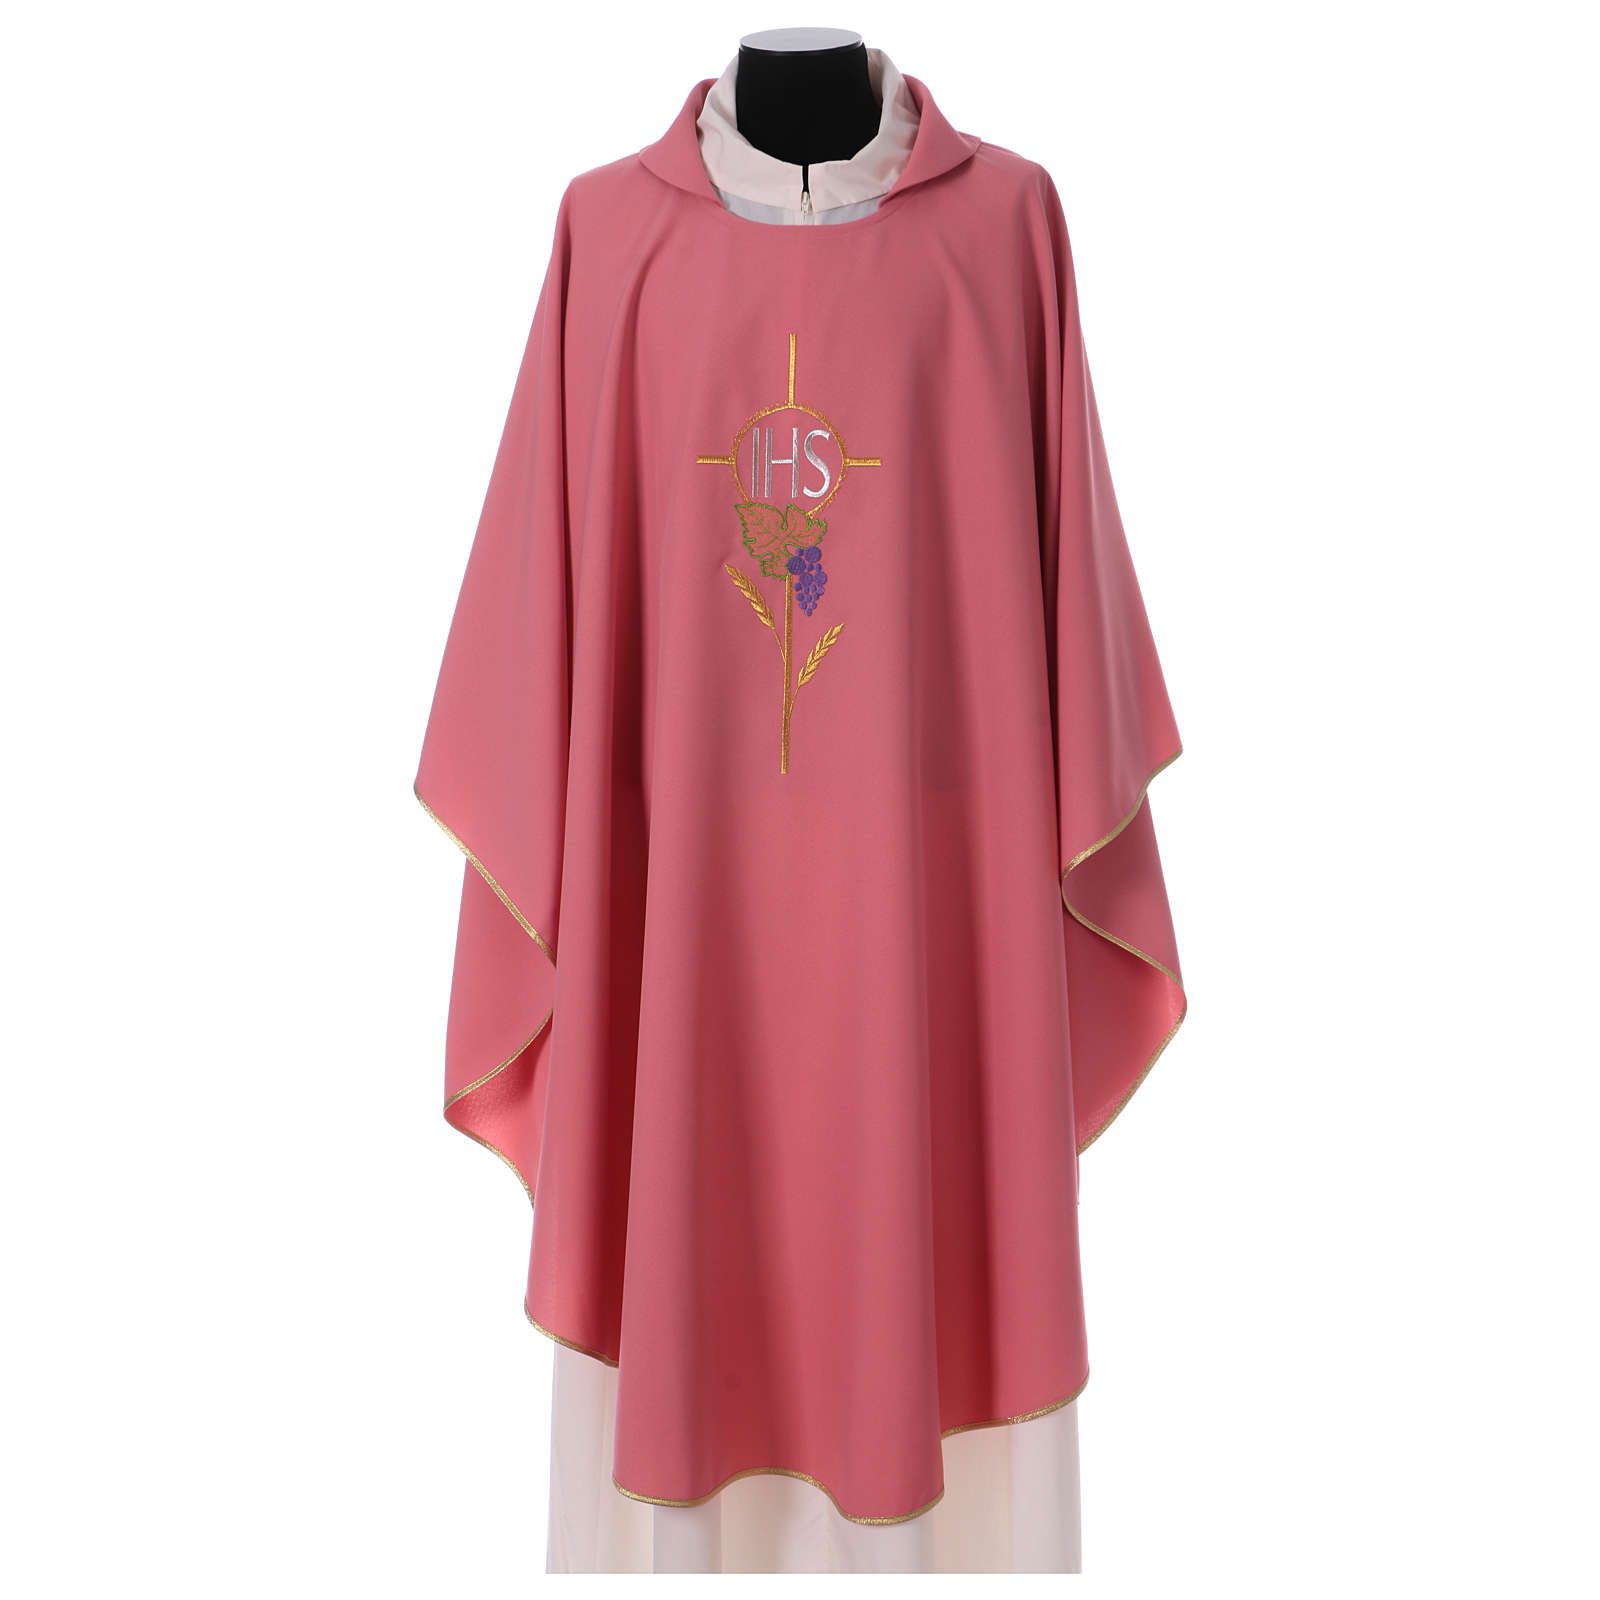 Rose IHS Chasuble with wheat decoration in polyester 4